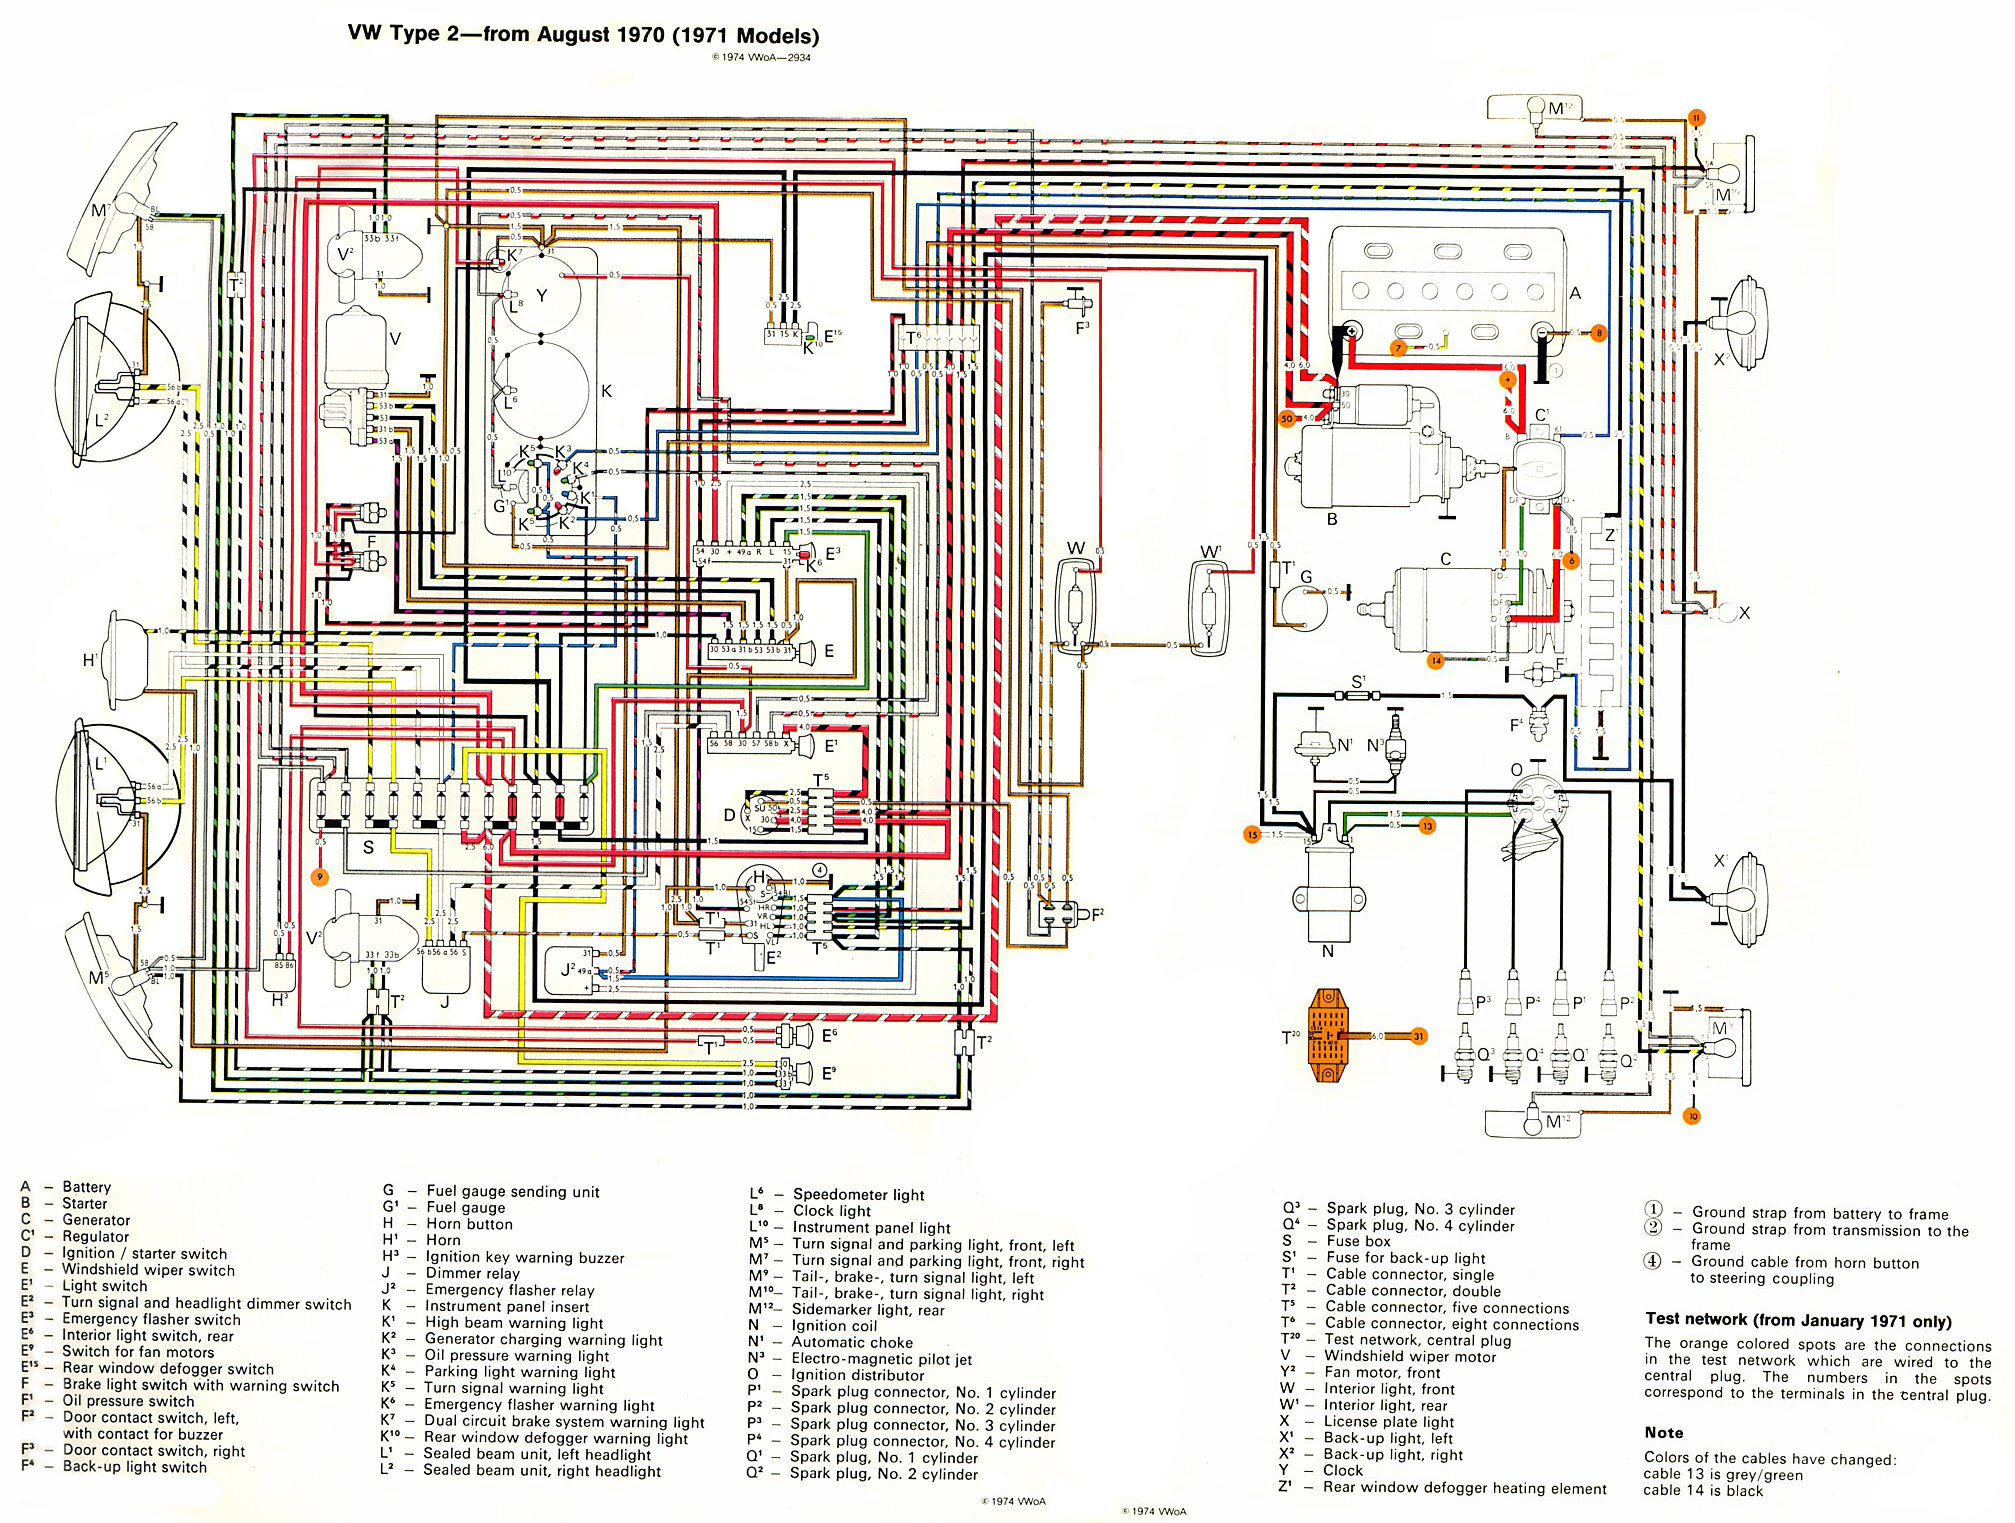 baybus_71_fixed wiring schematic diagram carrier package unit wiring diagram vw wiring diagram symbols at nearapp.co